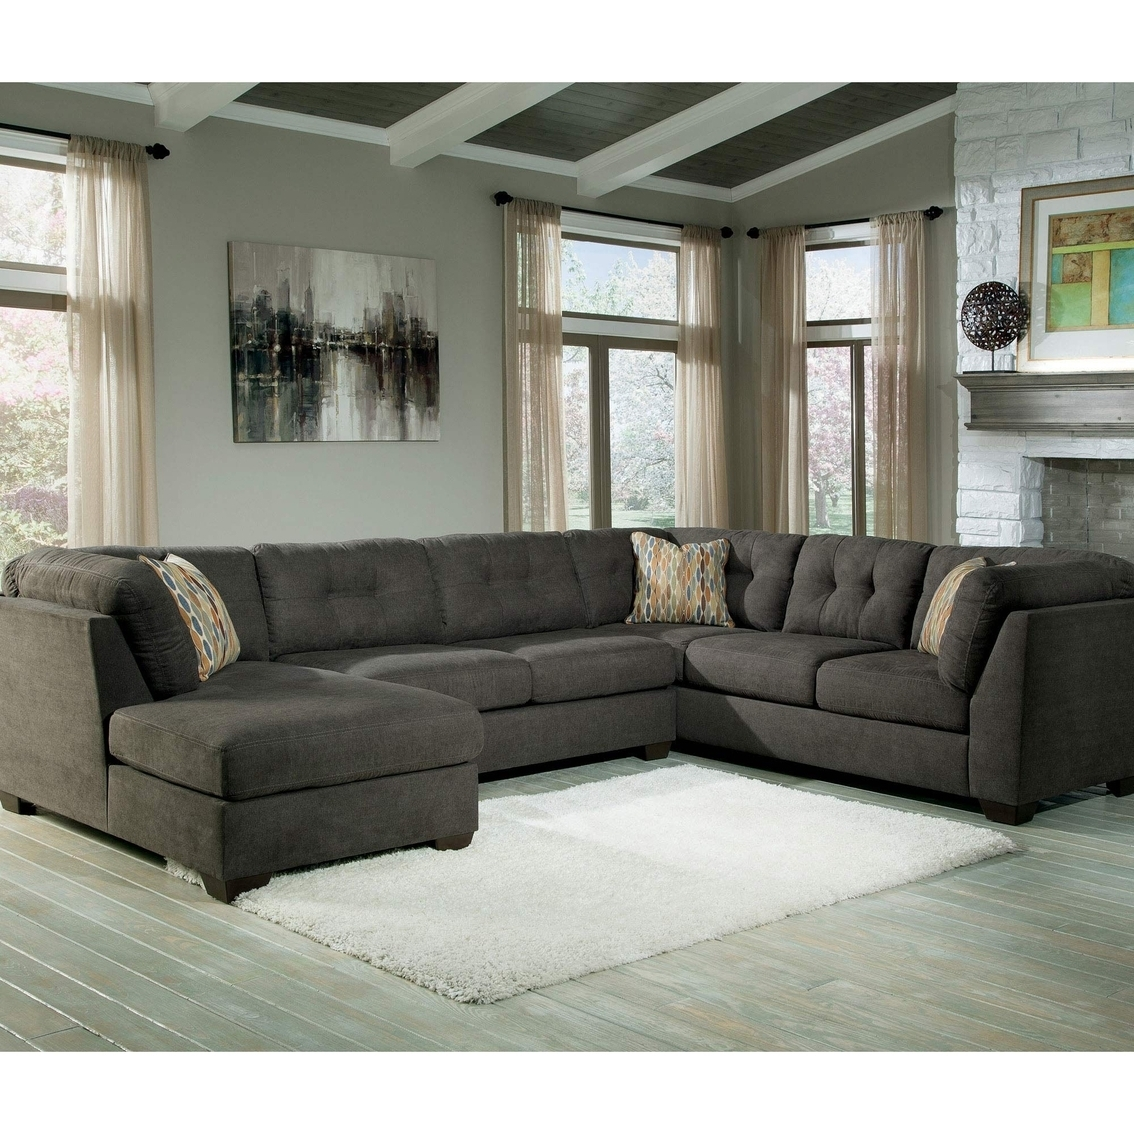 Preferred 3 Piece Sectional Sofas With Chaise With Benchcraft Delta City 3 Pc (View 11 of 15)